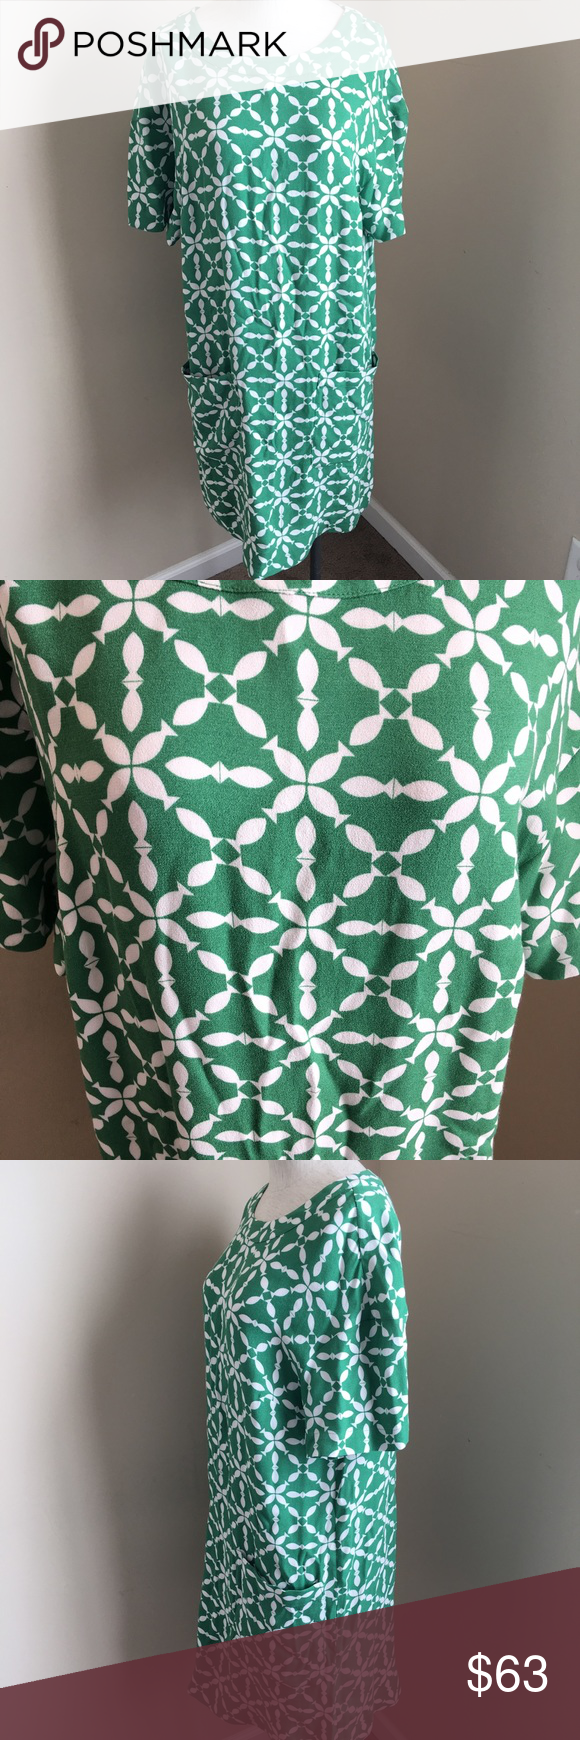 """Boden Fish Print Shift Dress with Pockets Very roomy lightweight Shift Dress. Has pockets. NWOT. 36"""" Long. 20"""" Armpit to Armpit. Boden Dresses"""